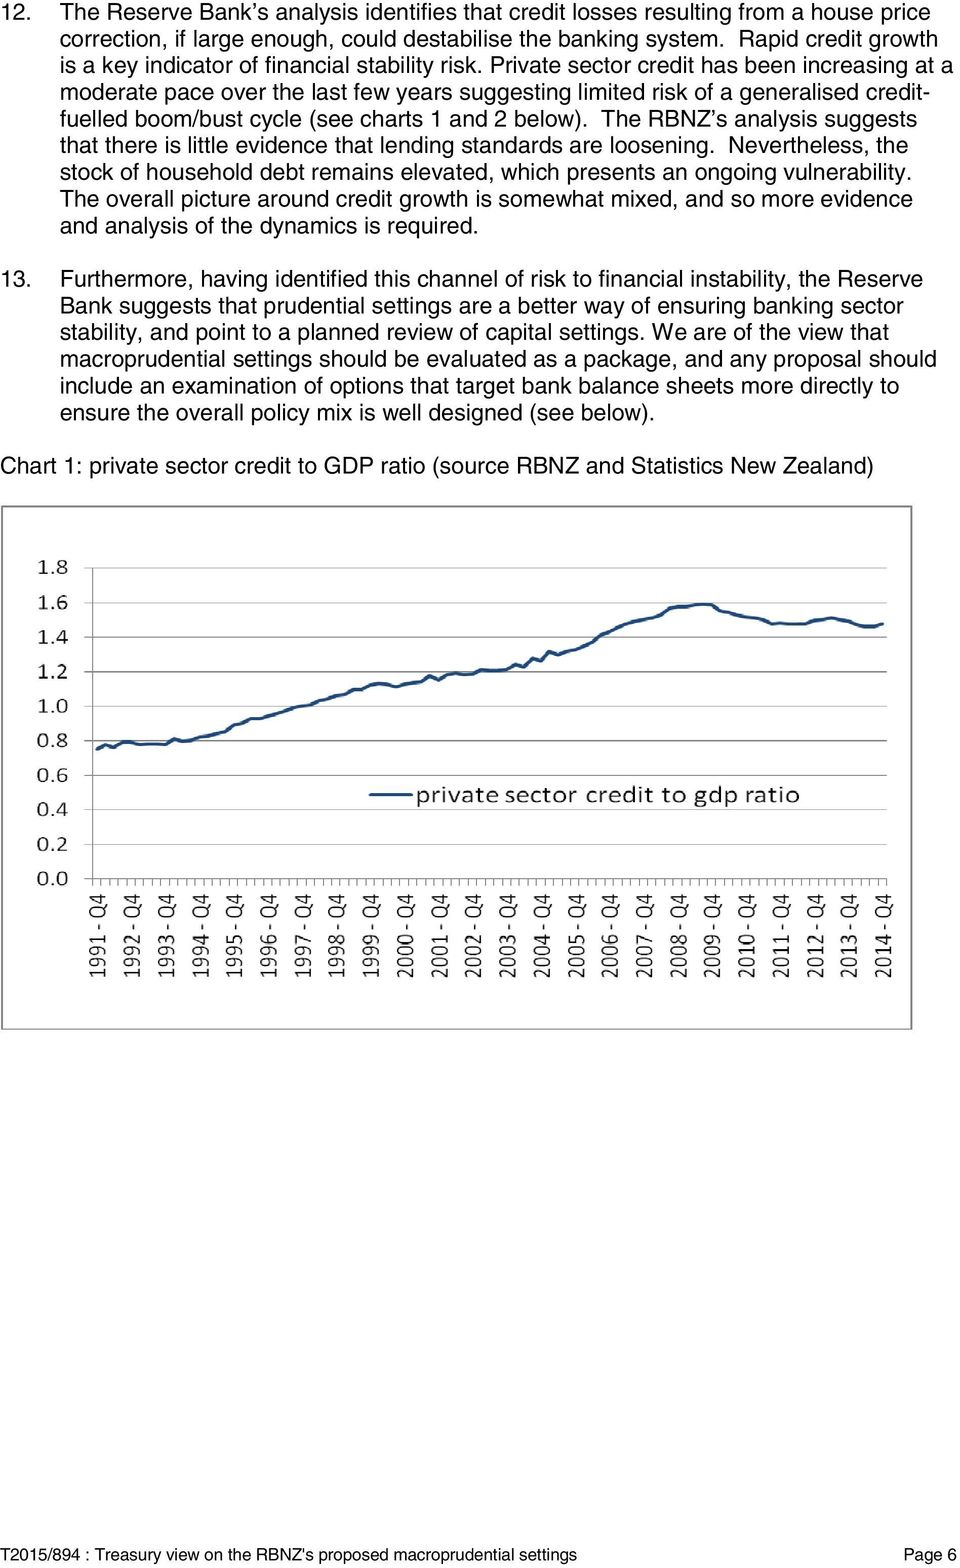 Private sector credit has been increasing at a moderate pace over the last few years suggesting limited risk of a generalised creditfuelled boom/bust cycle (see charts 1 and 2 below).